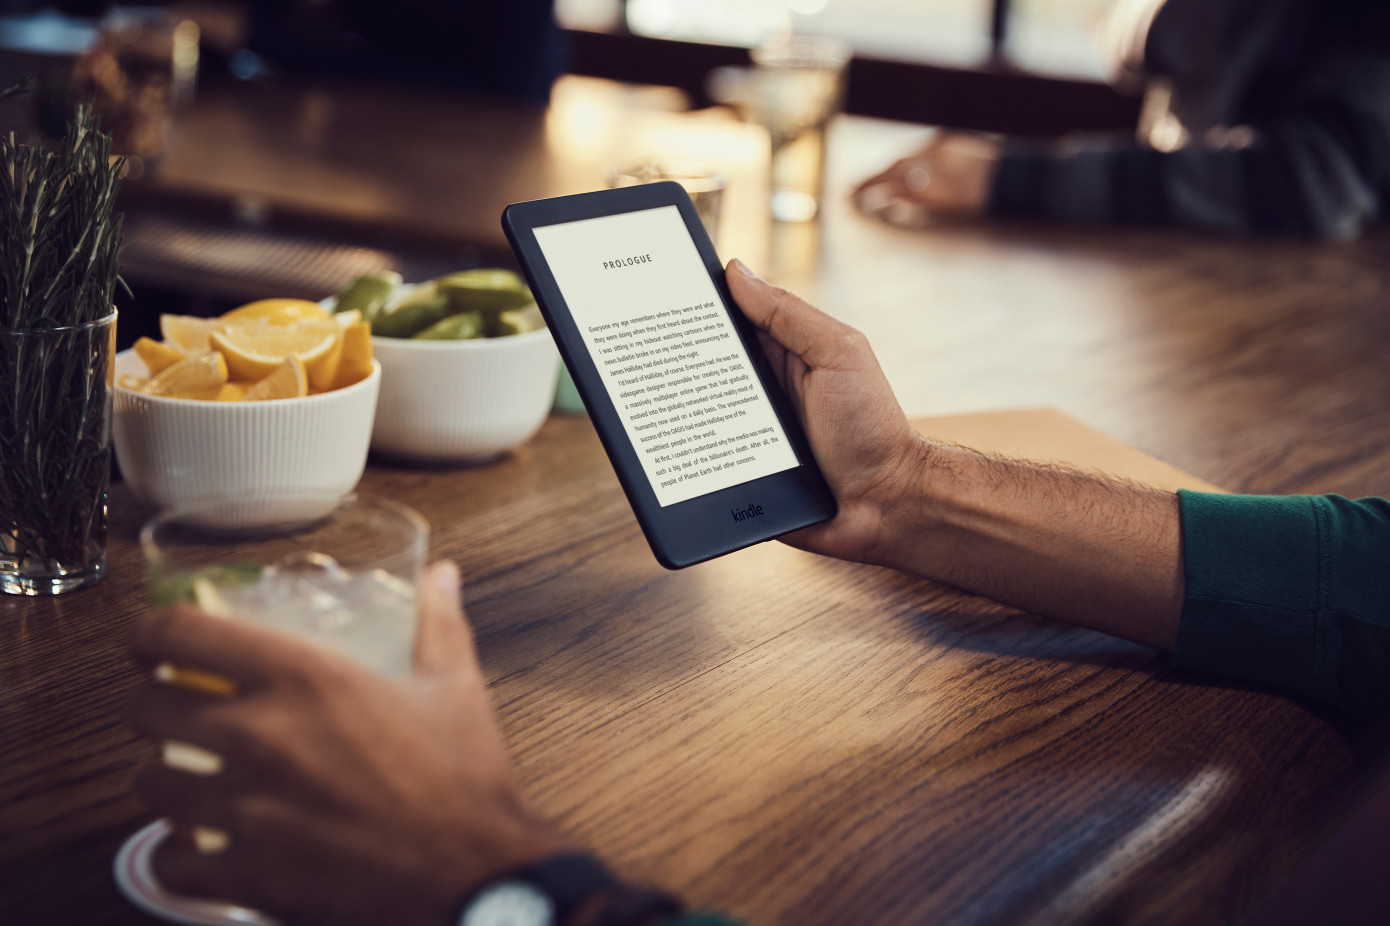 Il nuovo amazon kindle base da euro e luce integrata in